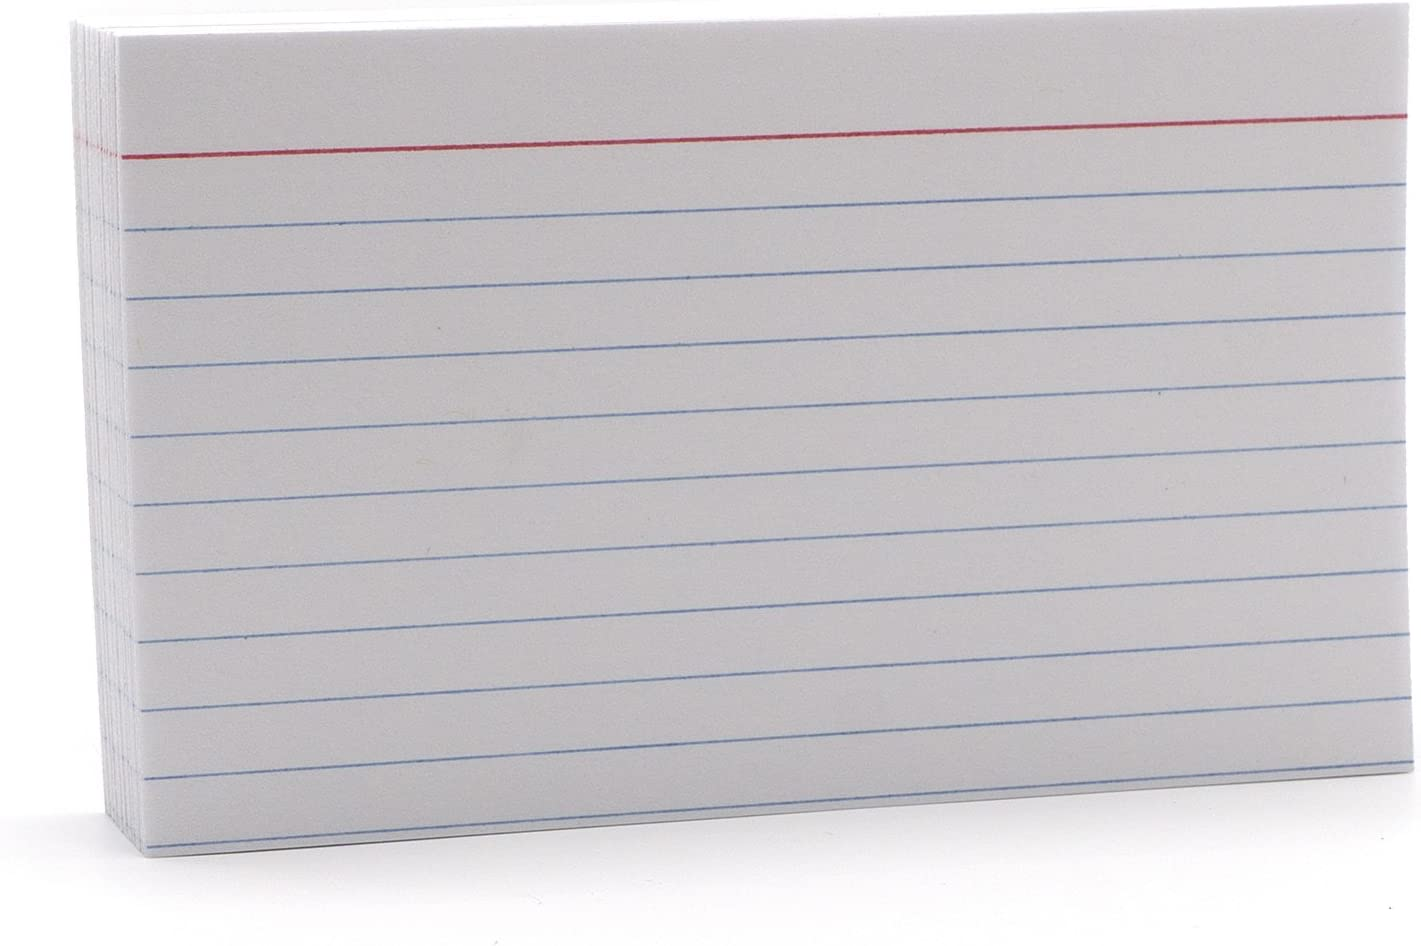 Emraw 25 Sheets White Index Cards - Durable Ruled Index Cards, Note Cards  Perfectly Sized for Writing Notes, Large Index Cards for School, Home and Intended For 3 X 5 Index Card Template